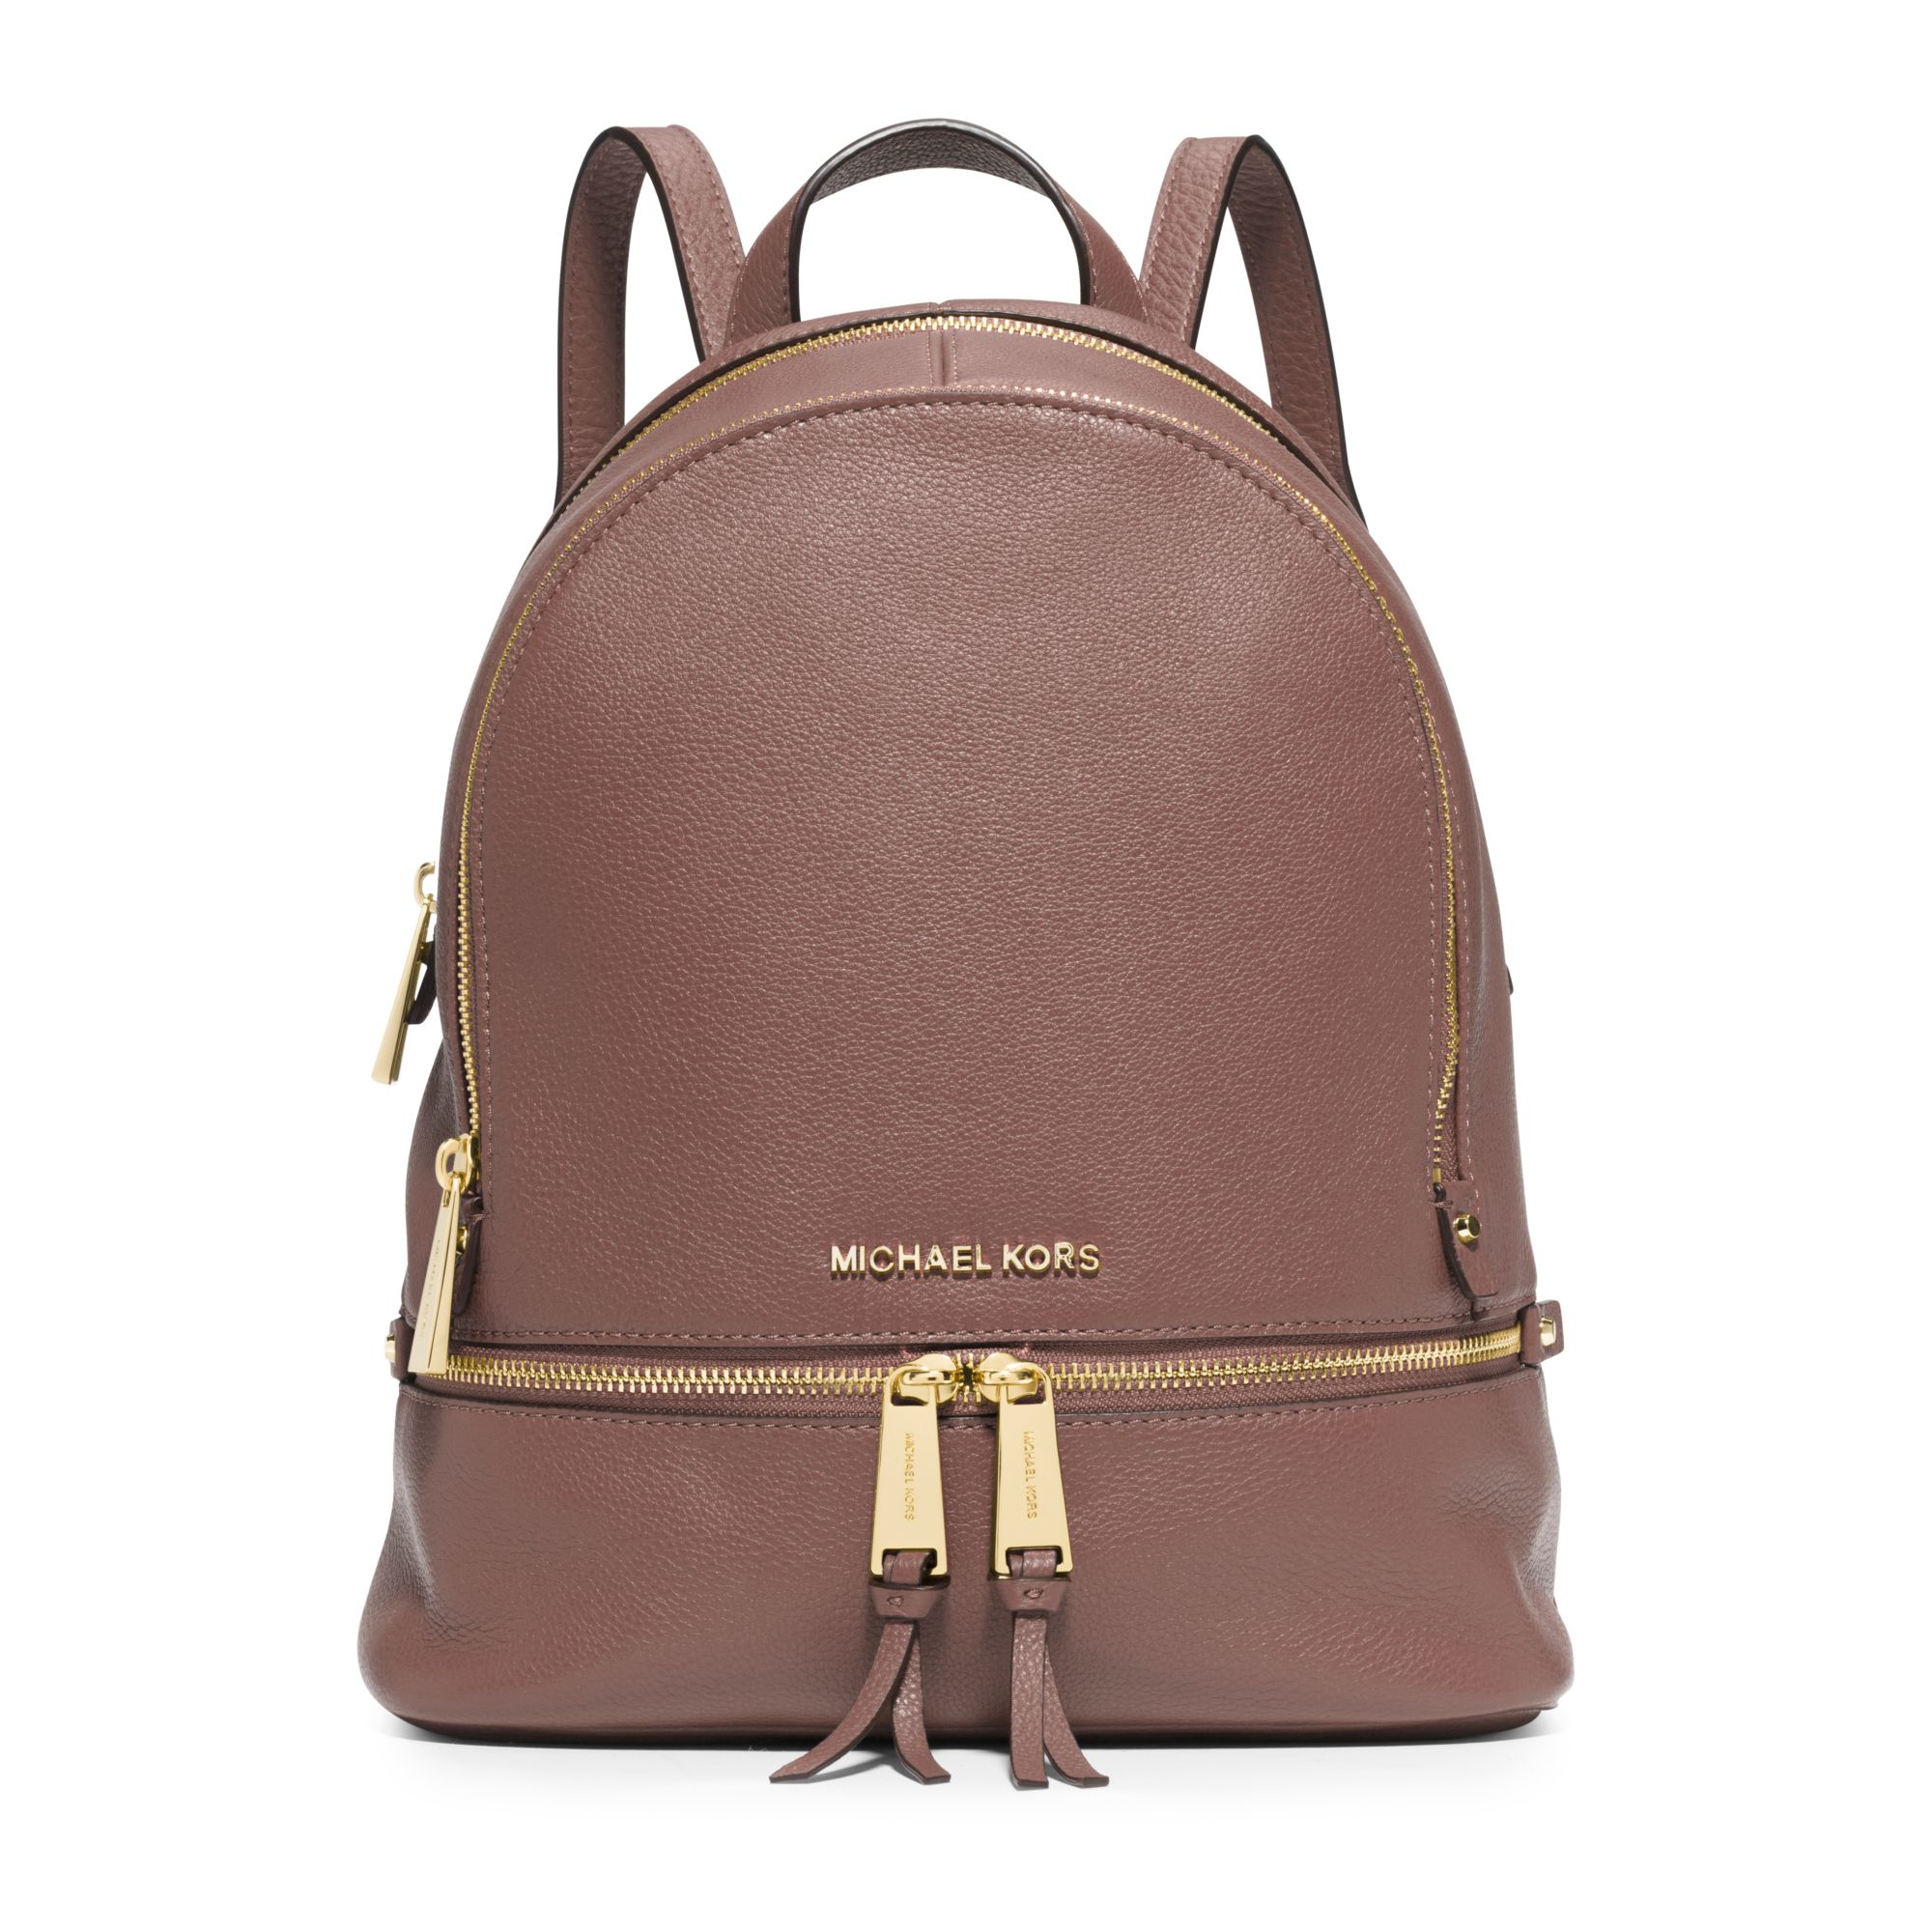 michael kors rhea small leather backpack in brown dusty rose lyst. Black Bedroom Furniture Sets. Home Design Ideas